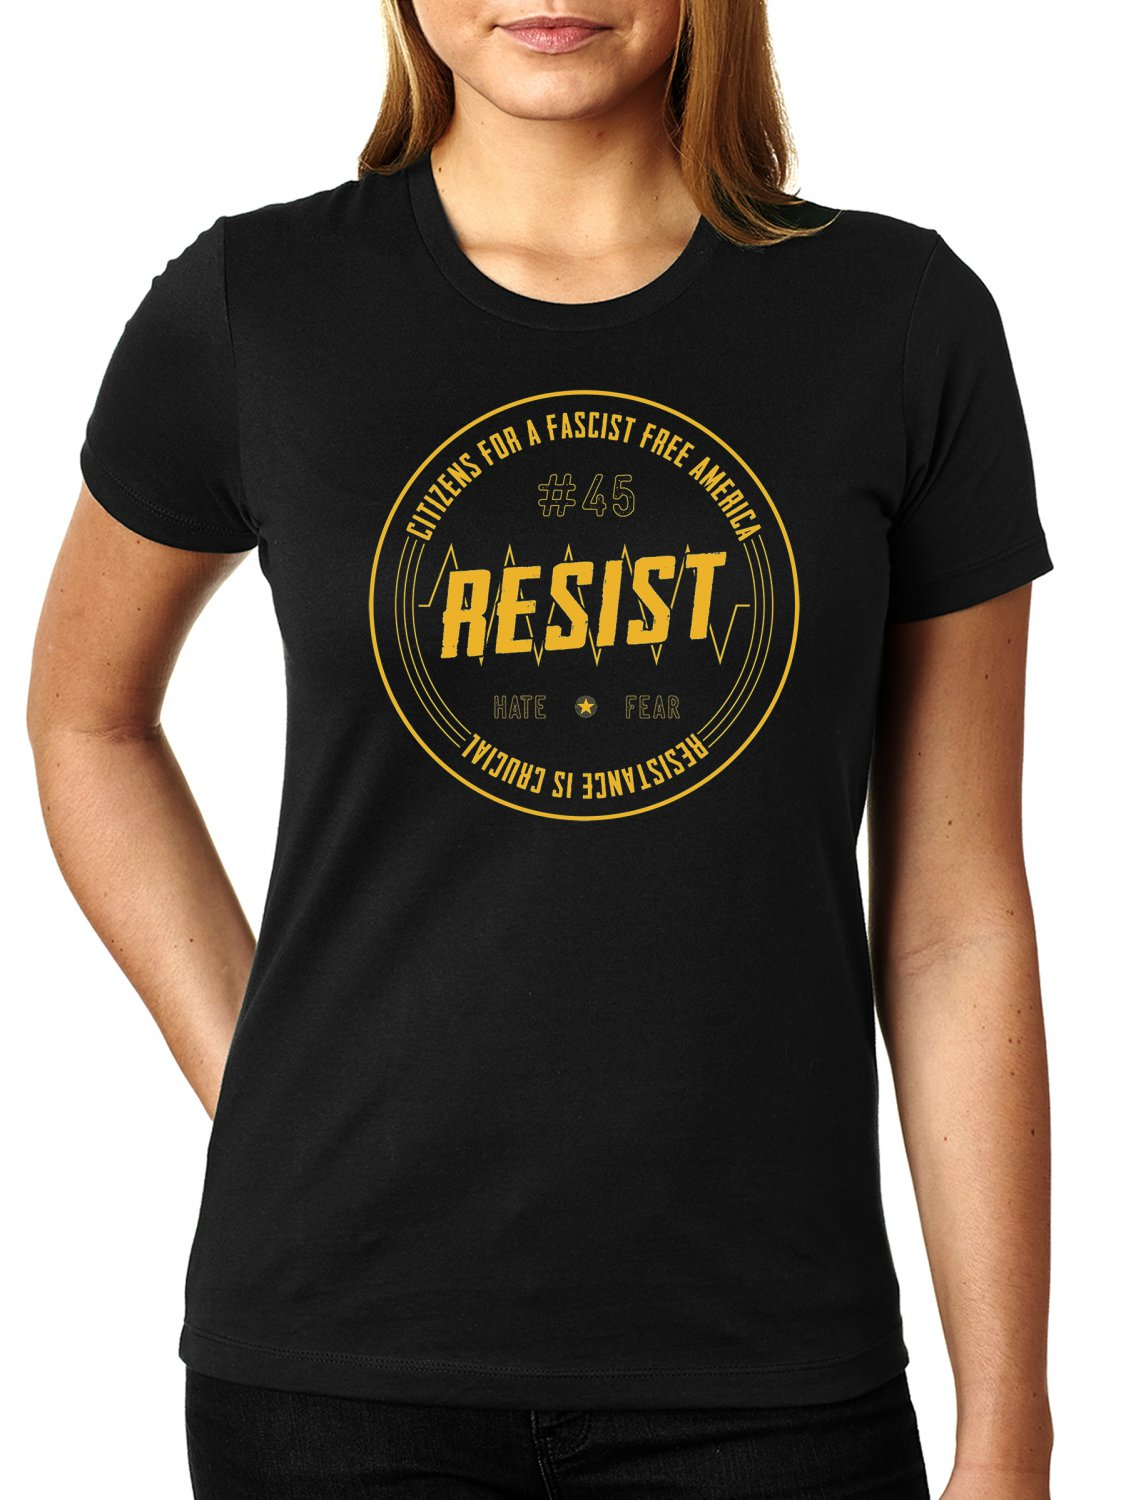 Citizens For A Fascist Free America- RESISTANCE IS CRUCIAL Cheeto Orange Ink - Women's SIZE S